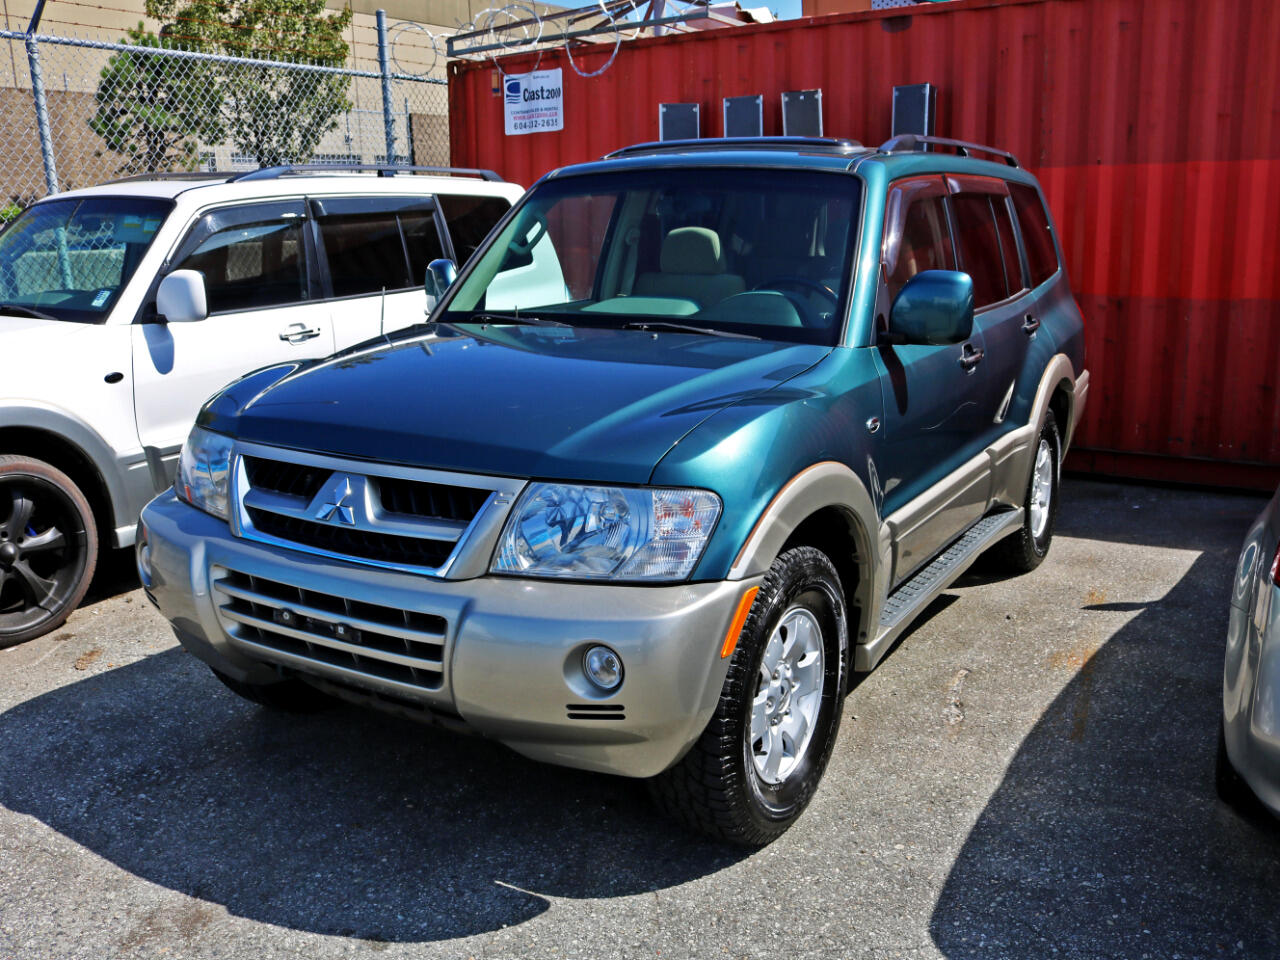 2003 Mitsubishi Montero XLS 4WD In House Loans Available Apply Online at S